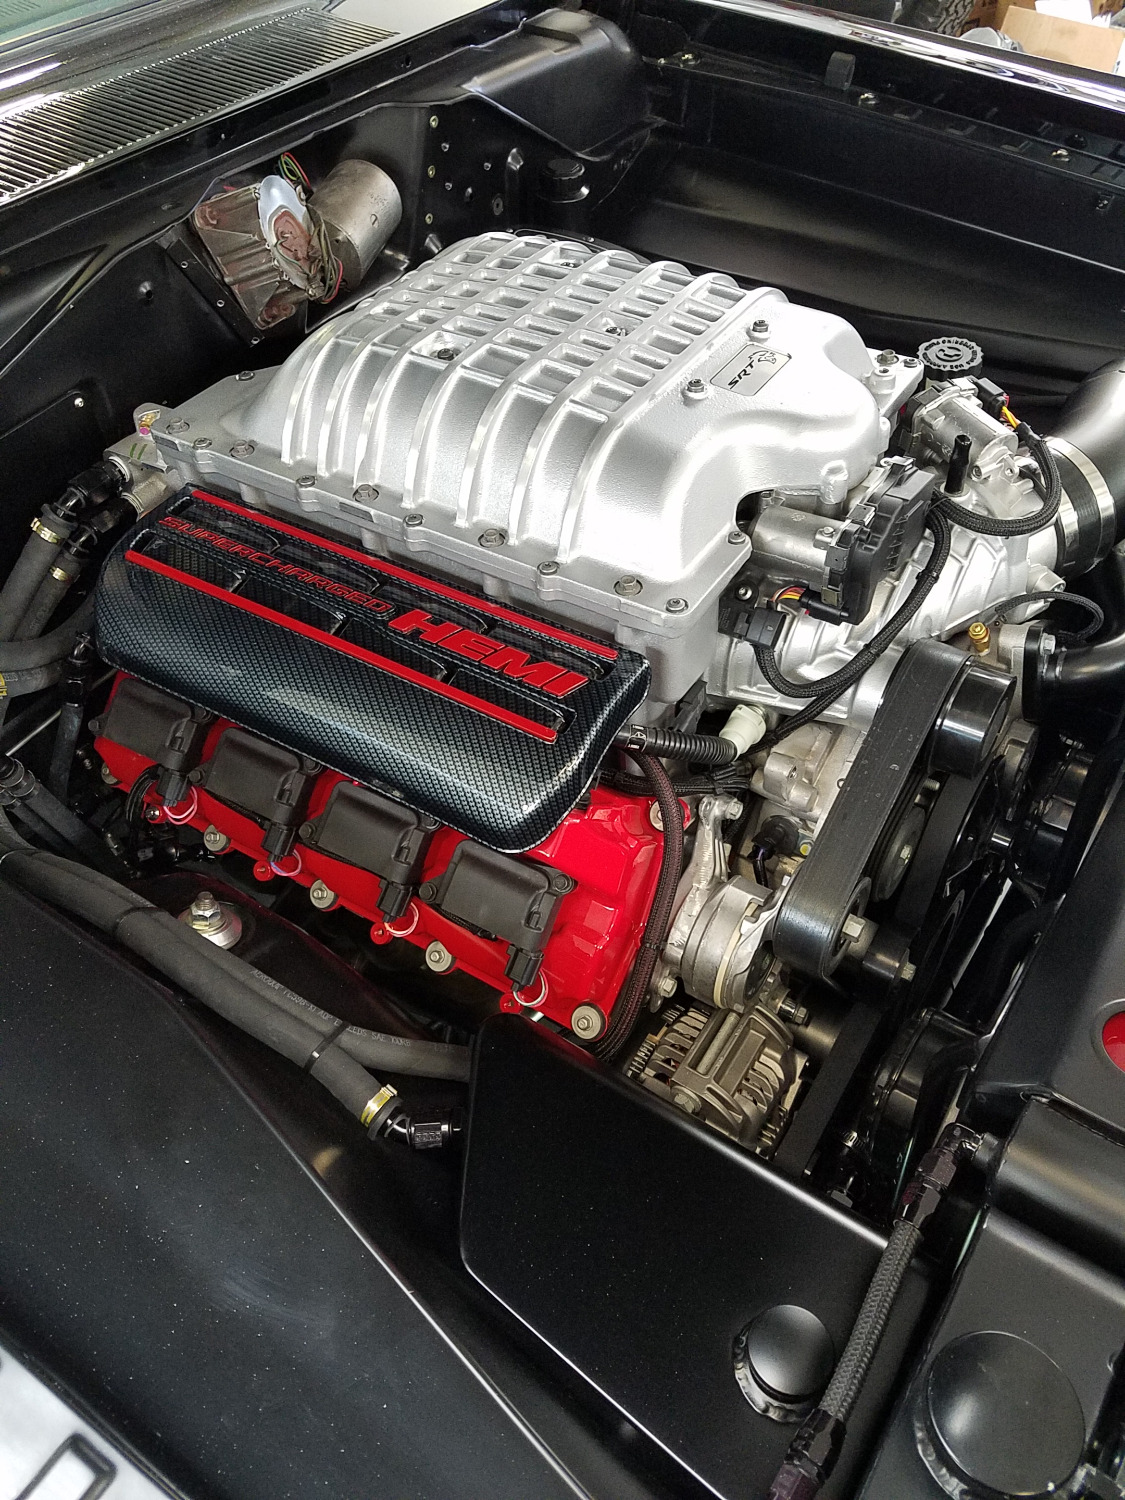 700+ HP Hellcat Engine